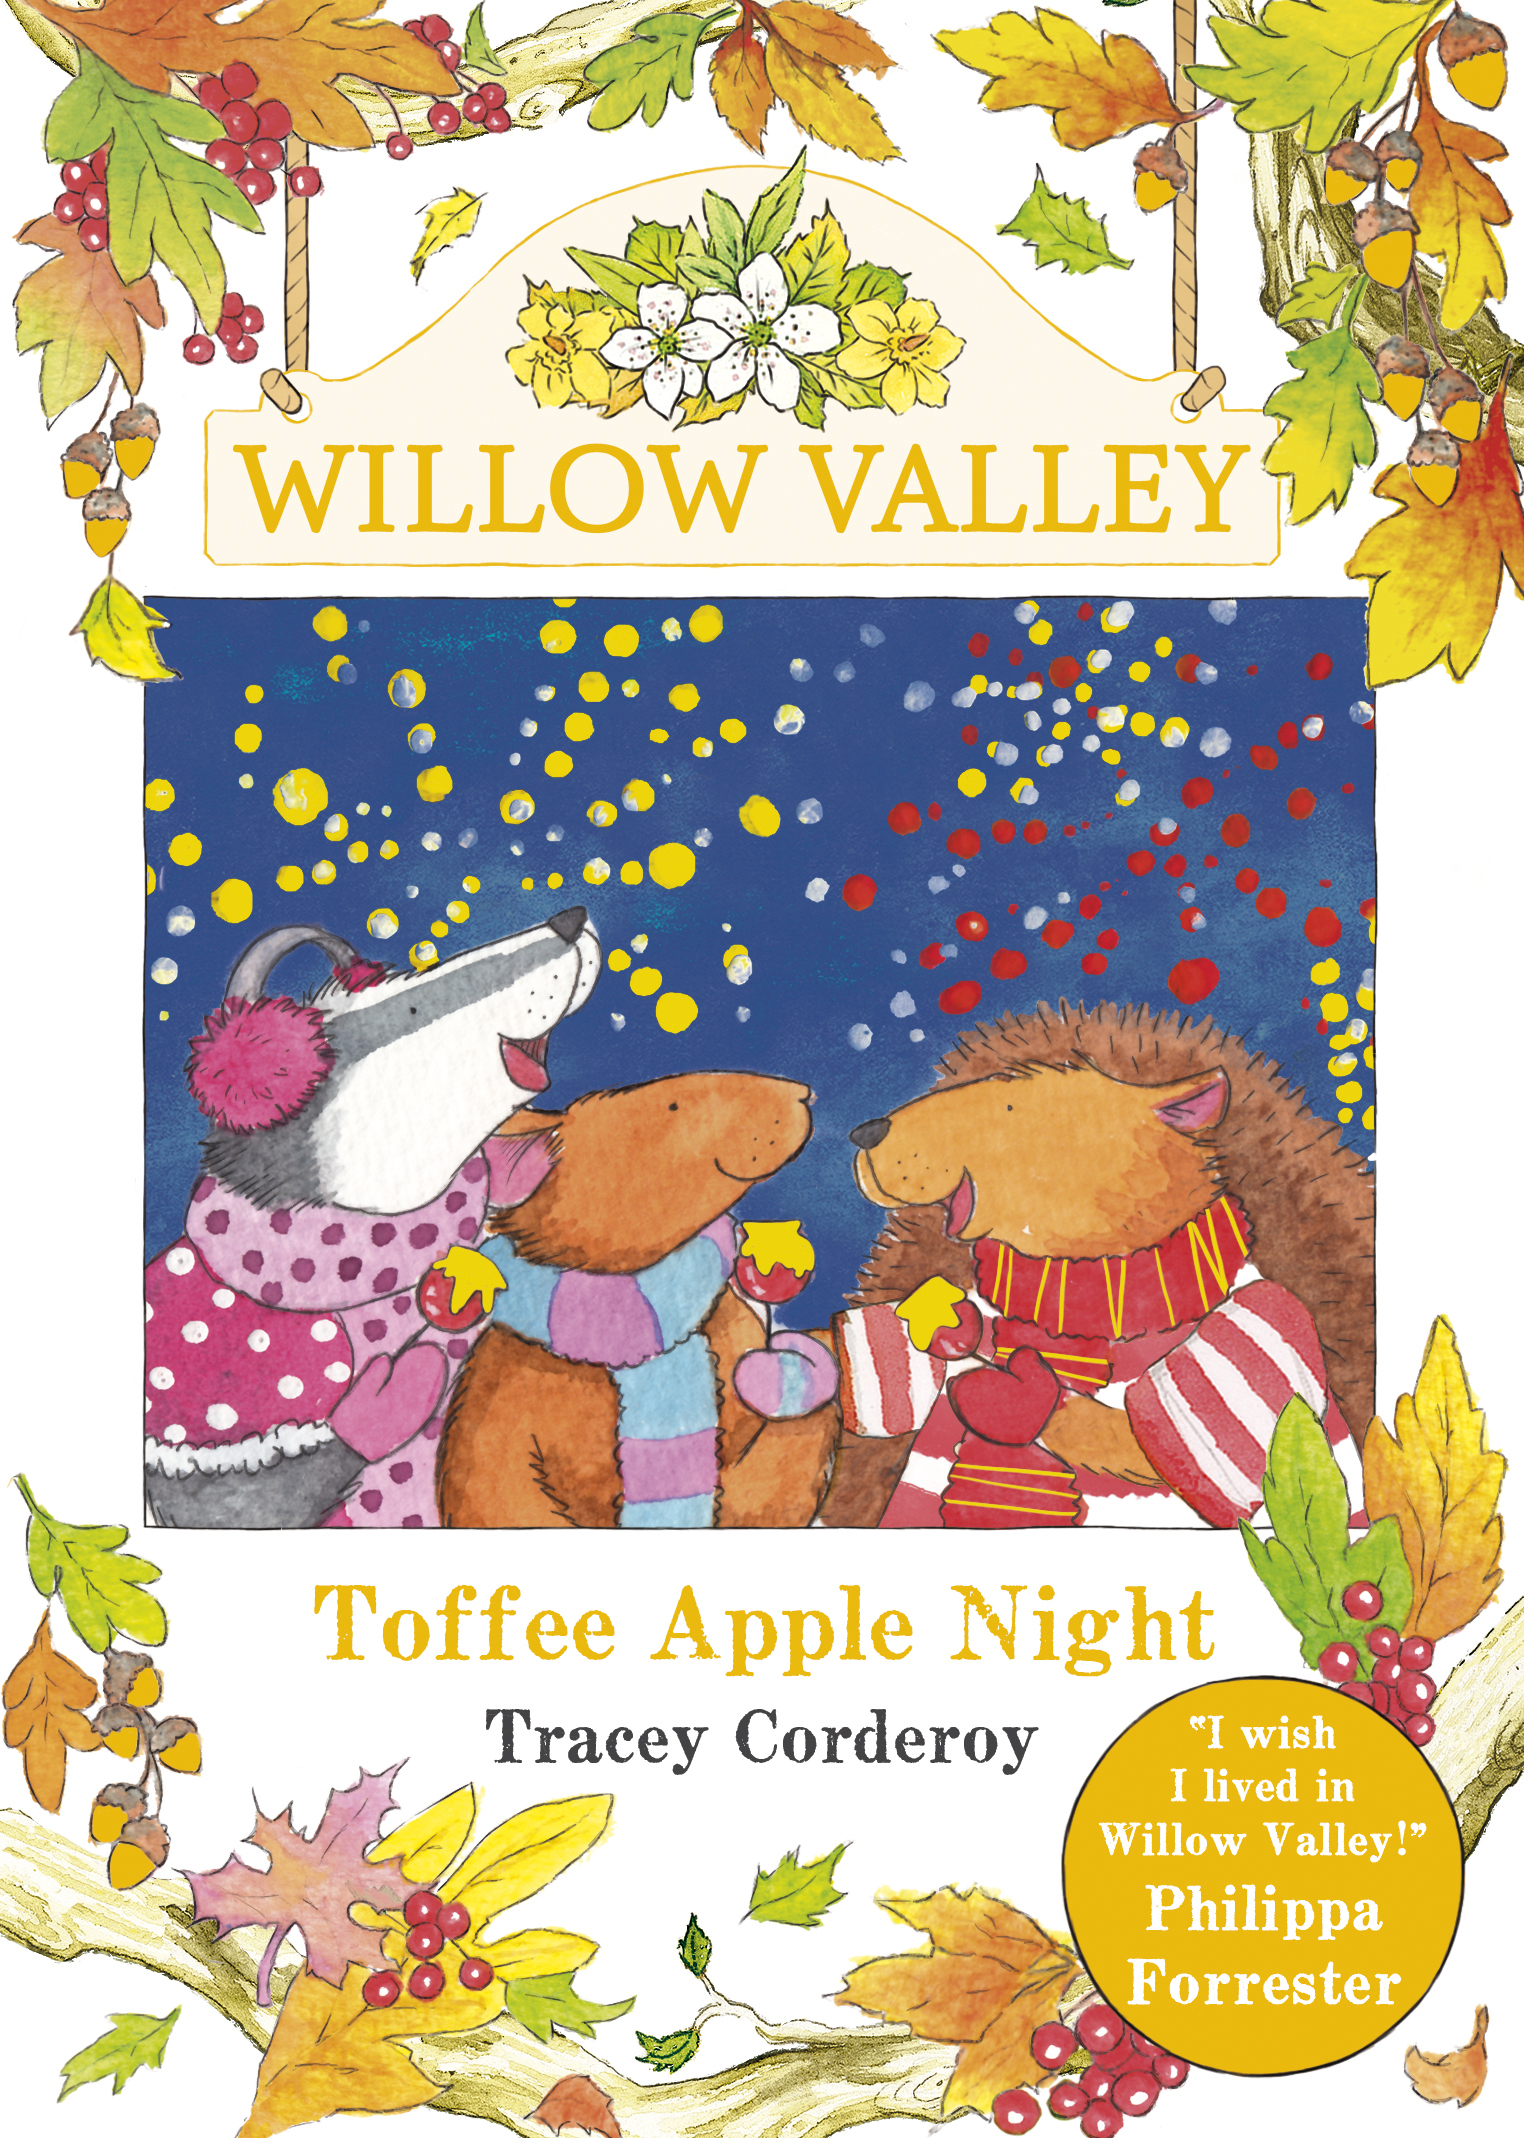 Willow Valley - Toffee Apple Night